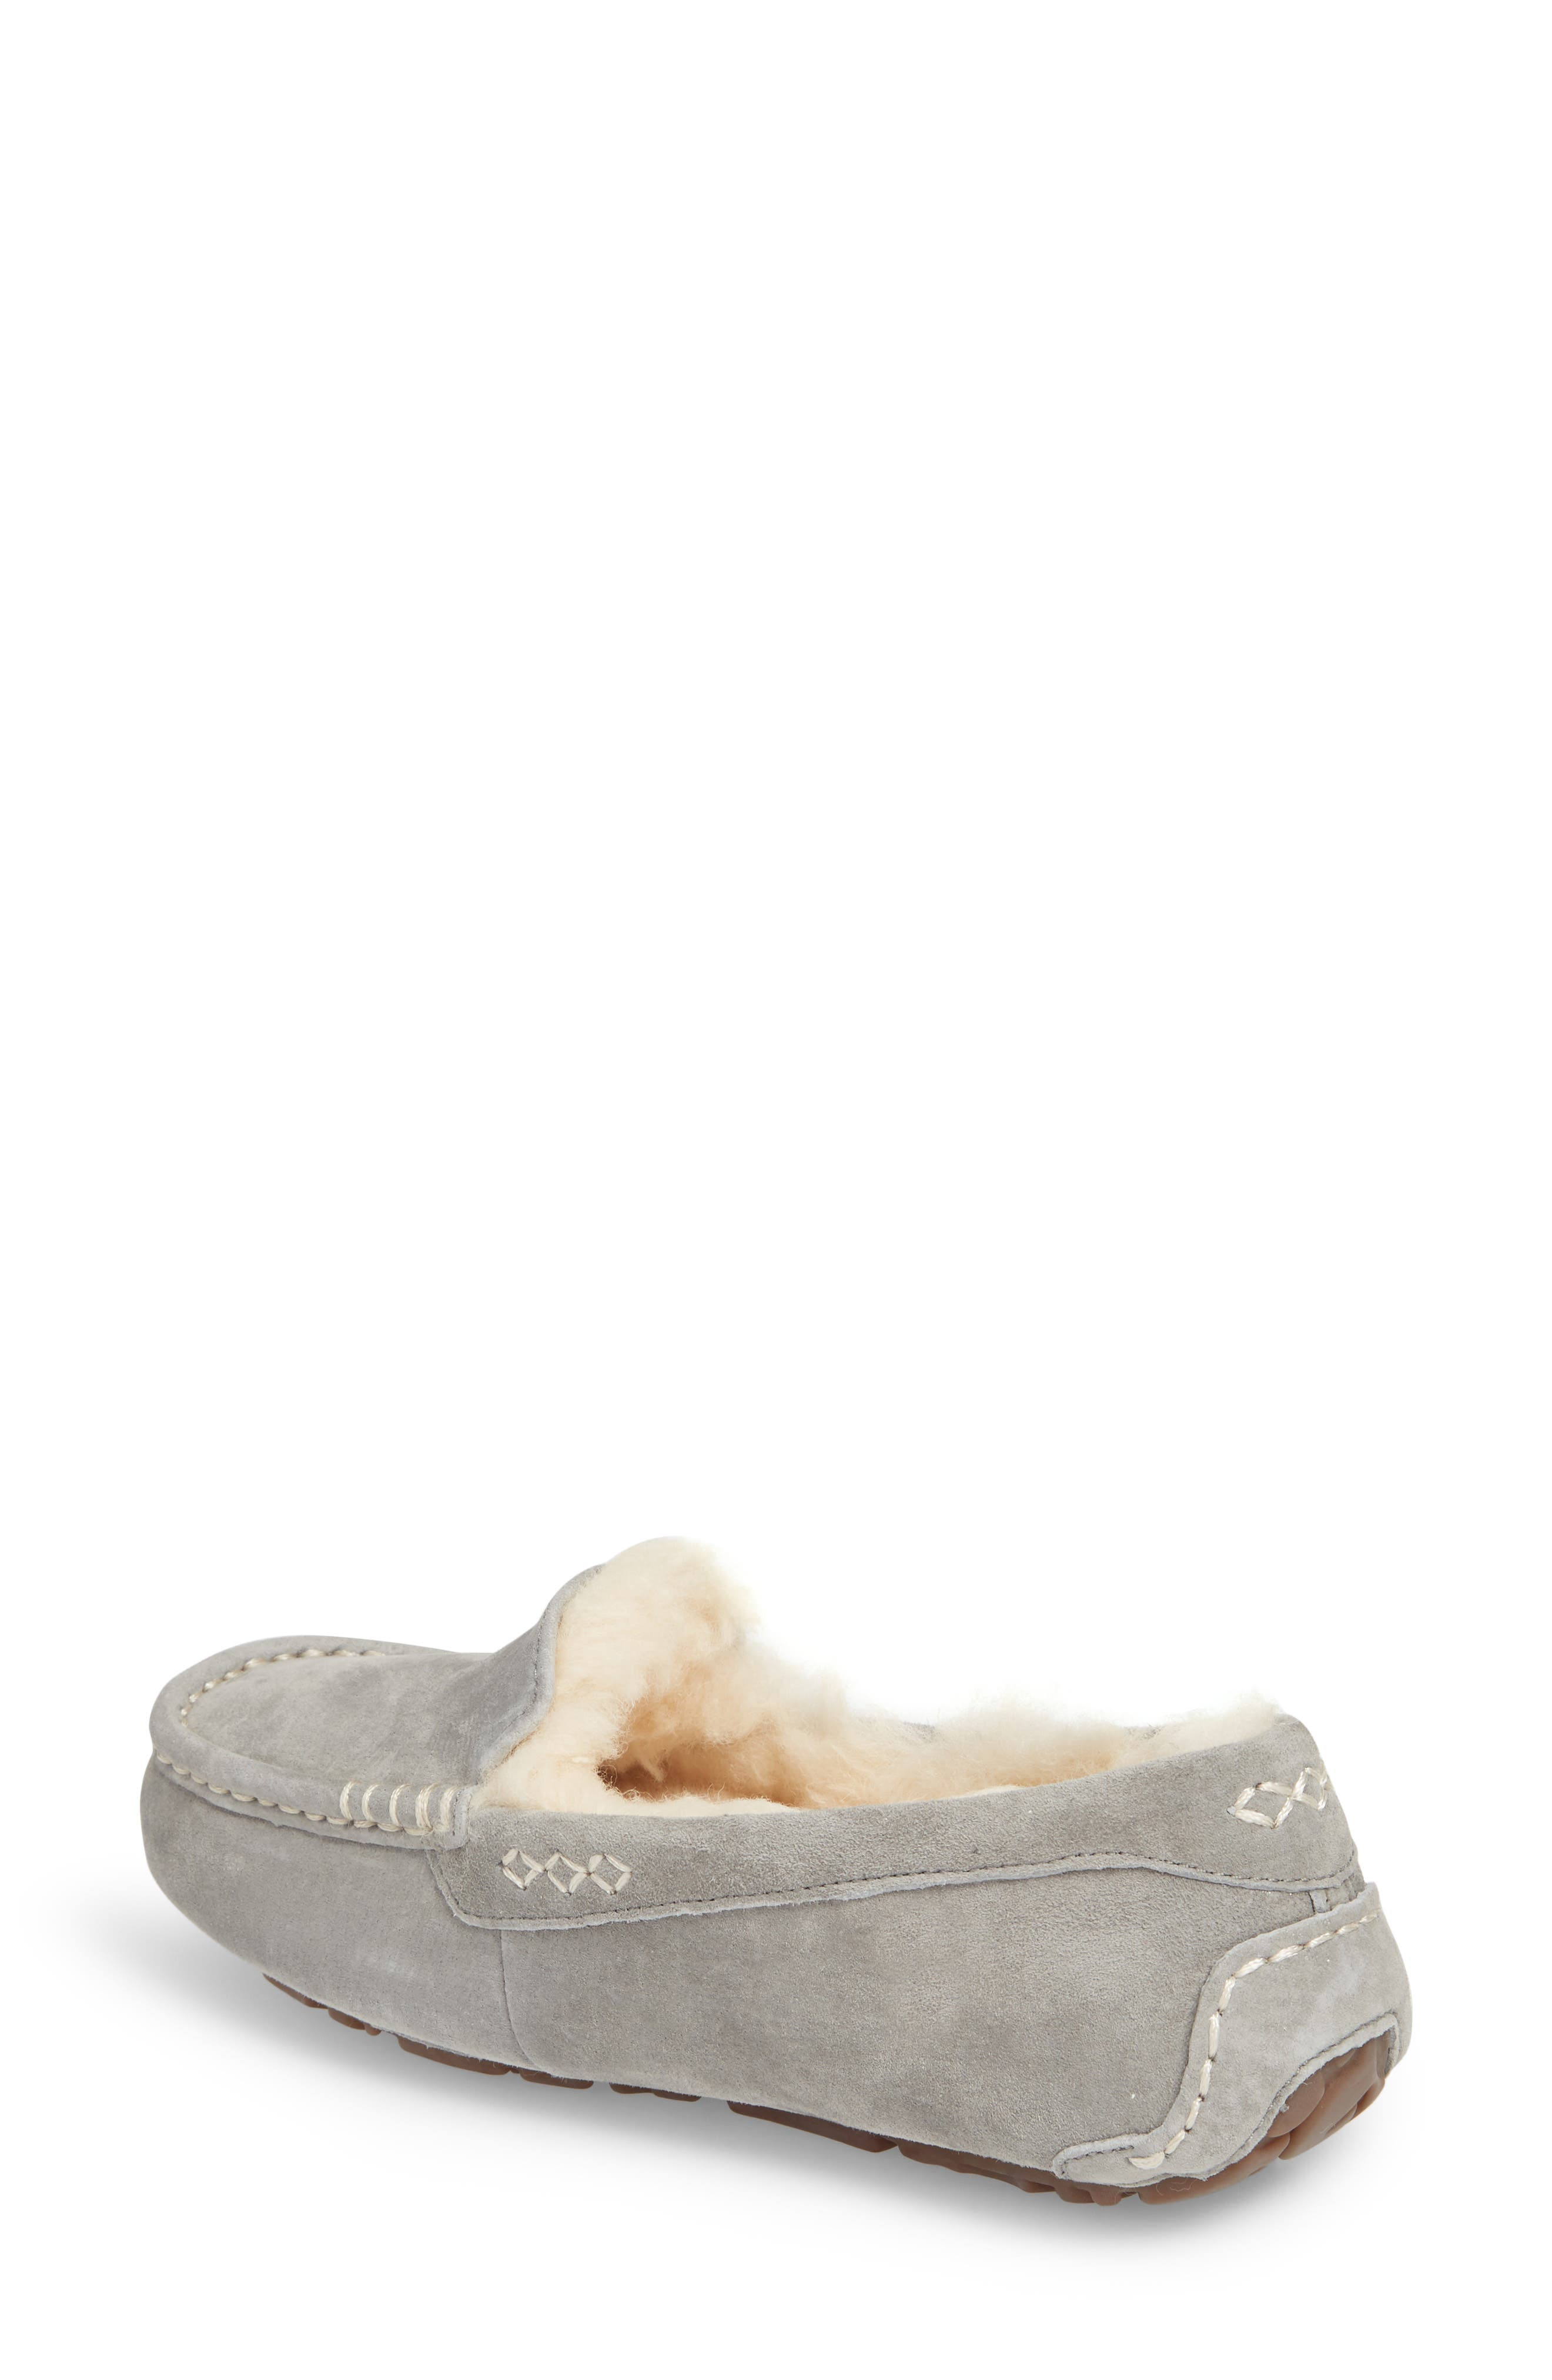 UGG<SUP>®</SUP>, Ansley Water Resistant Slipper, Alternate thumbnail 2, color, LIGHT GREY